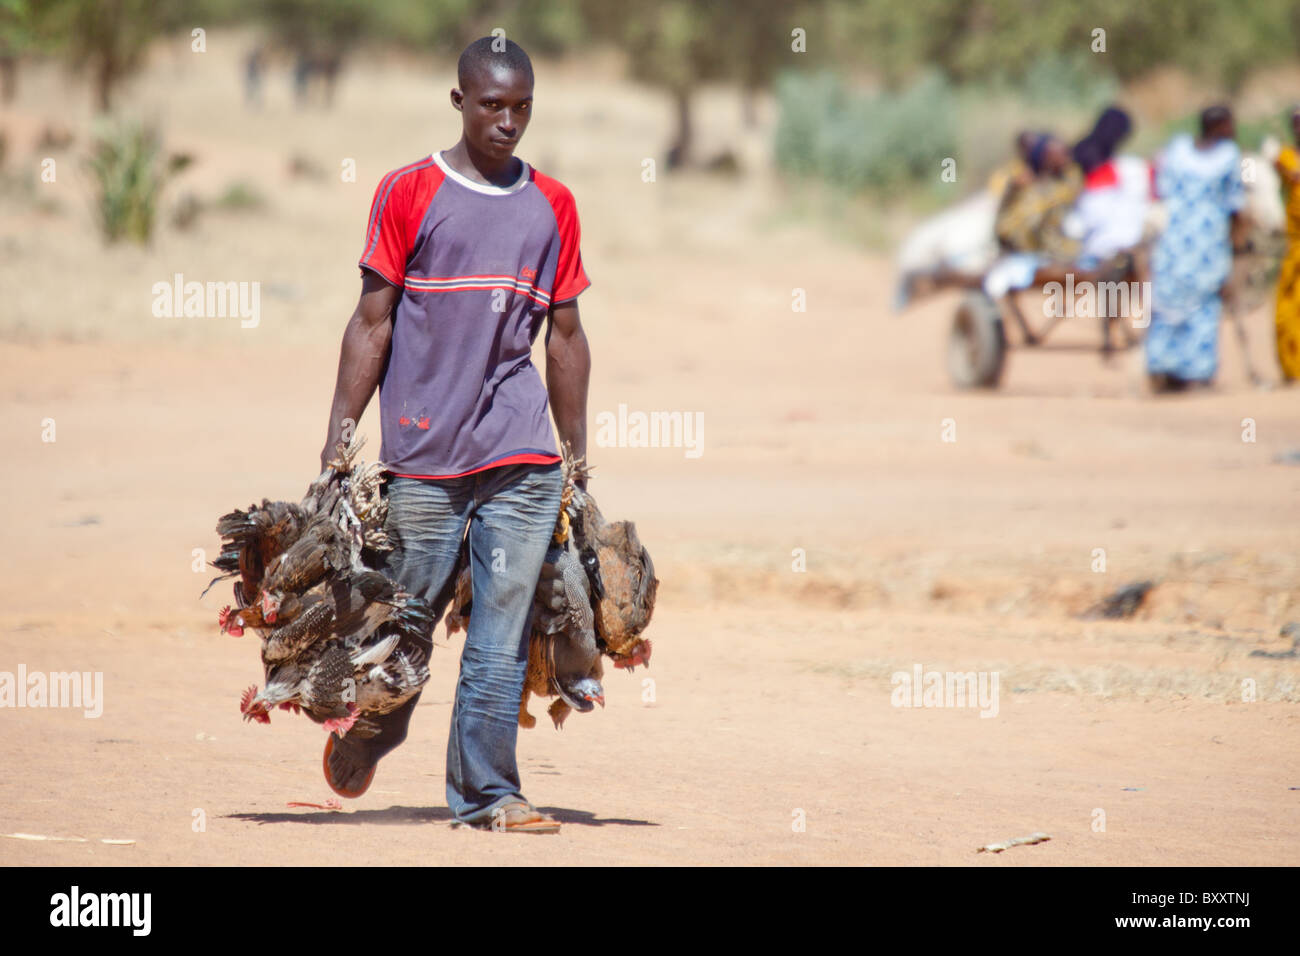 A man brings poultry to the village market of Bourro in northern Burkina Faso. - Stock Image